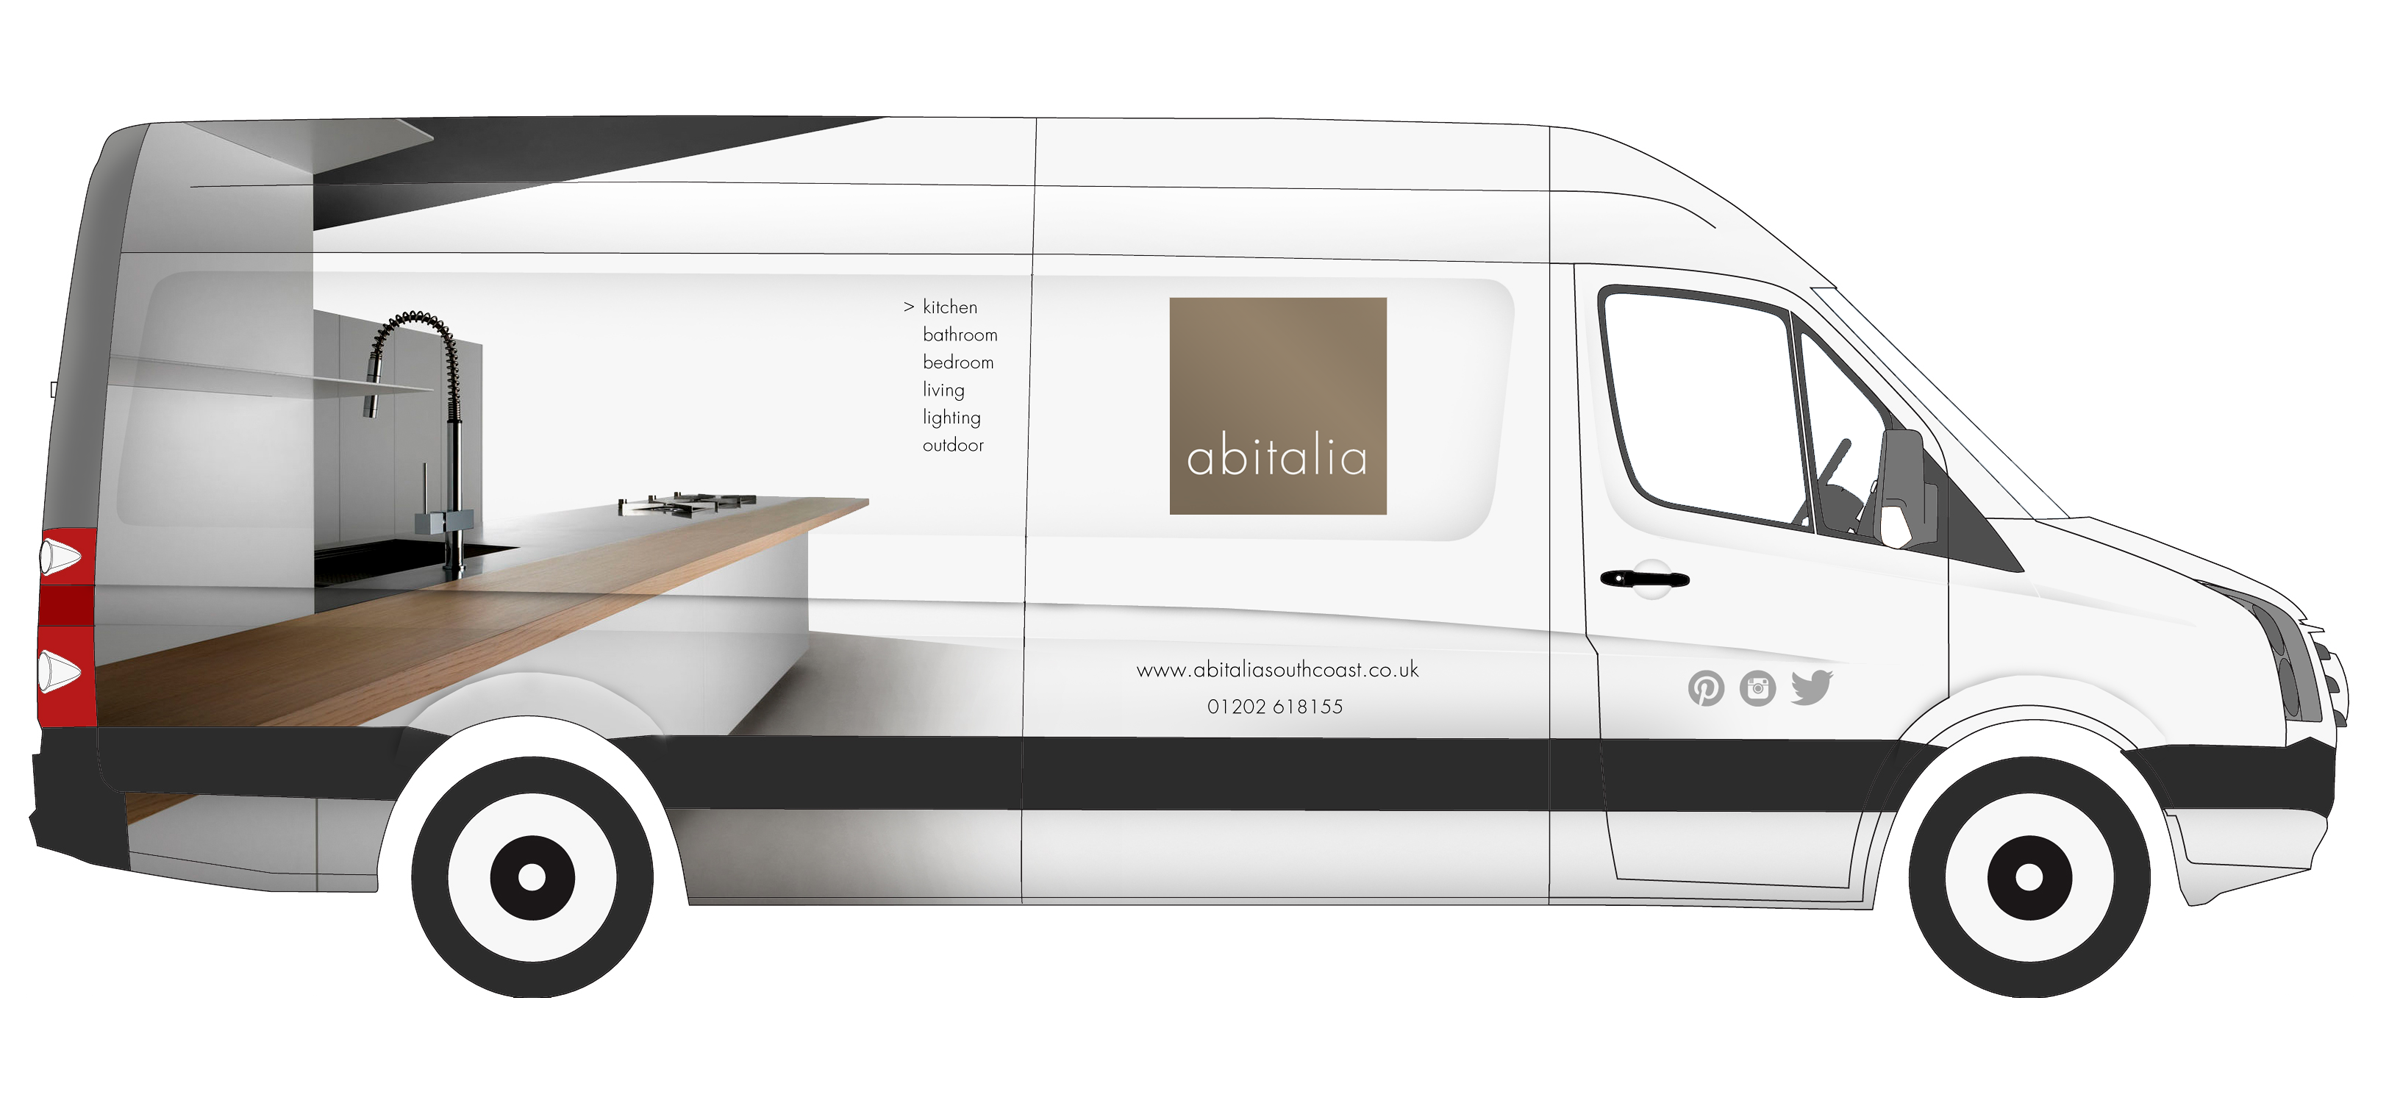 Design of new van graphics